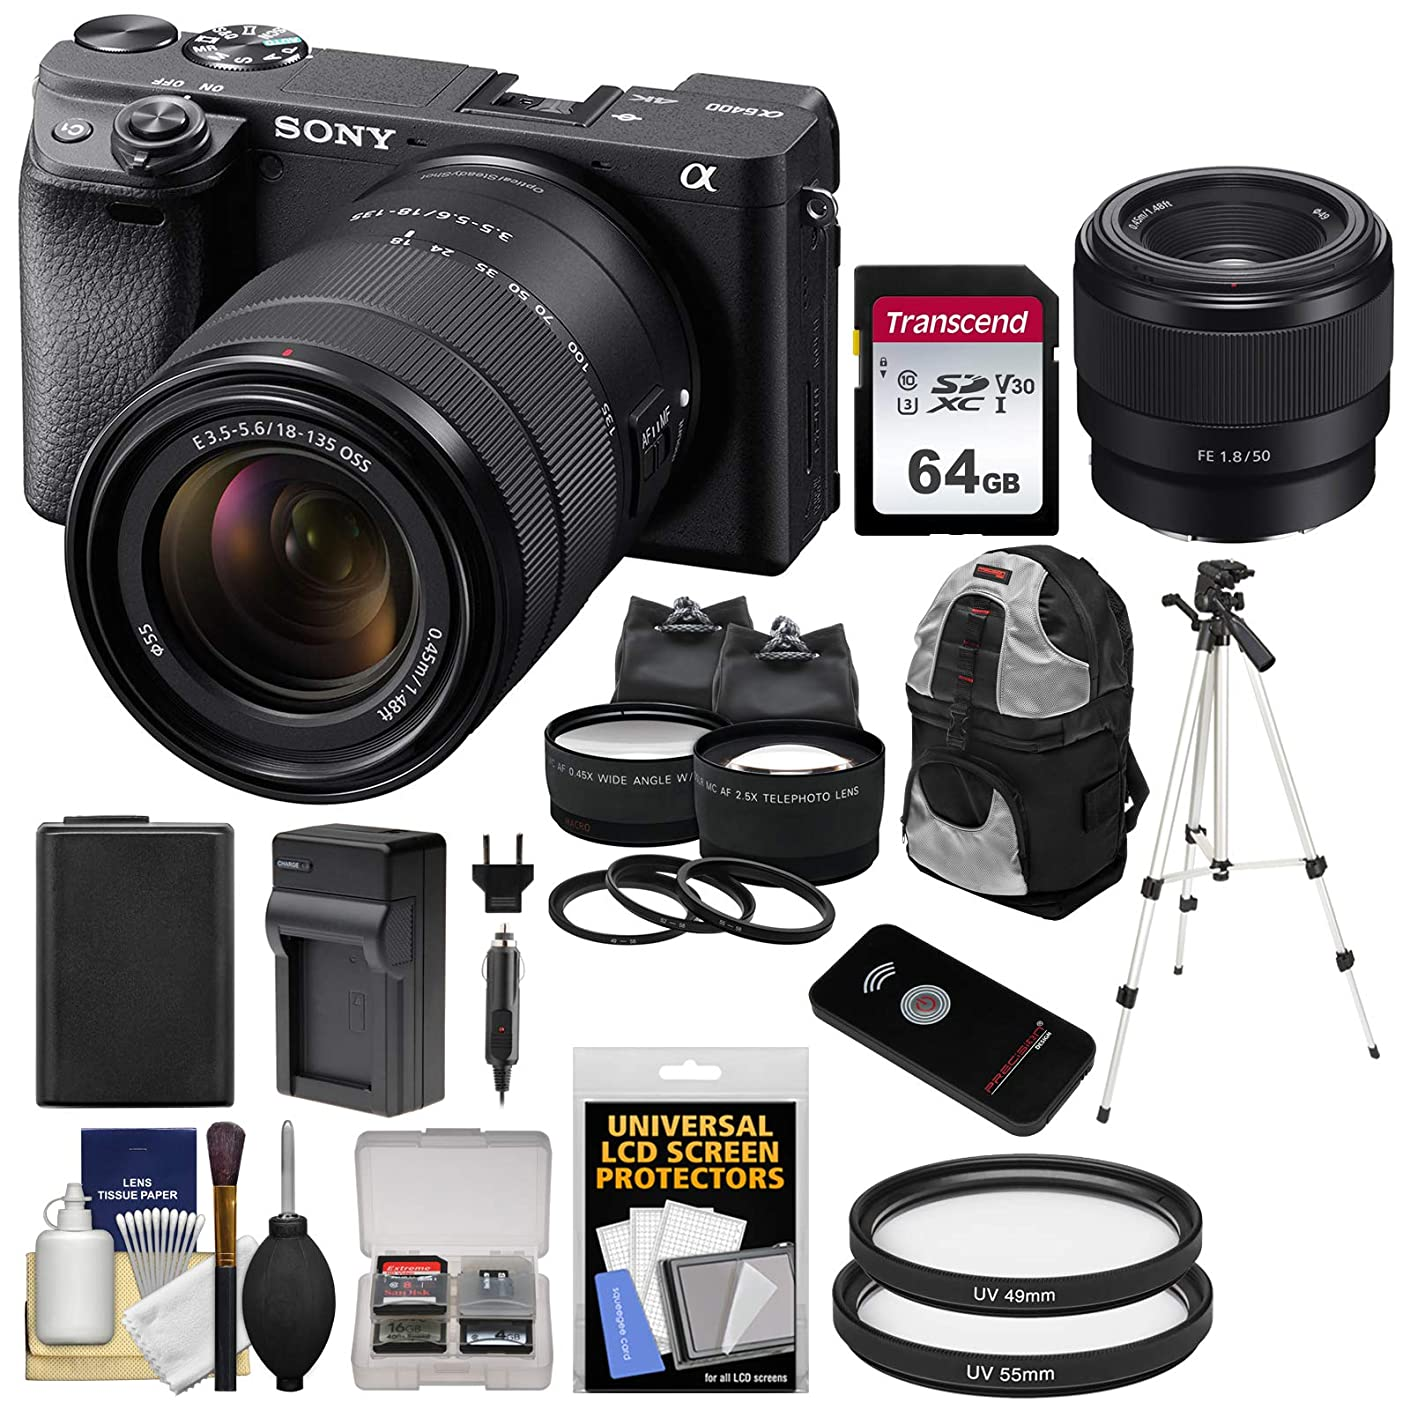 Sony Alpha A6400 4K Wi-Fi Digital Camera & 18-135mm & FE 50mm f/1.8 Lenses with 64GB Card + Battery + Charger + Backpack + Tripod + 2 Lens Kit